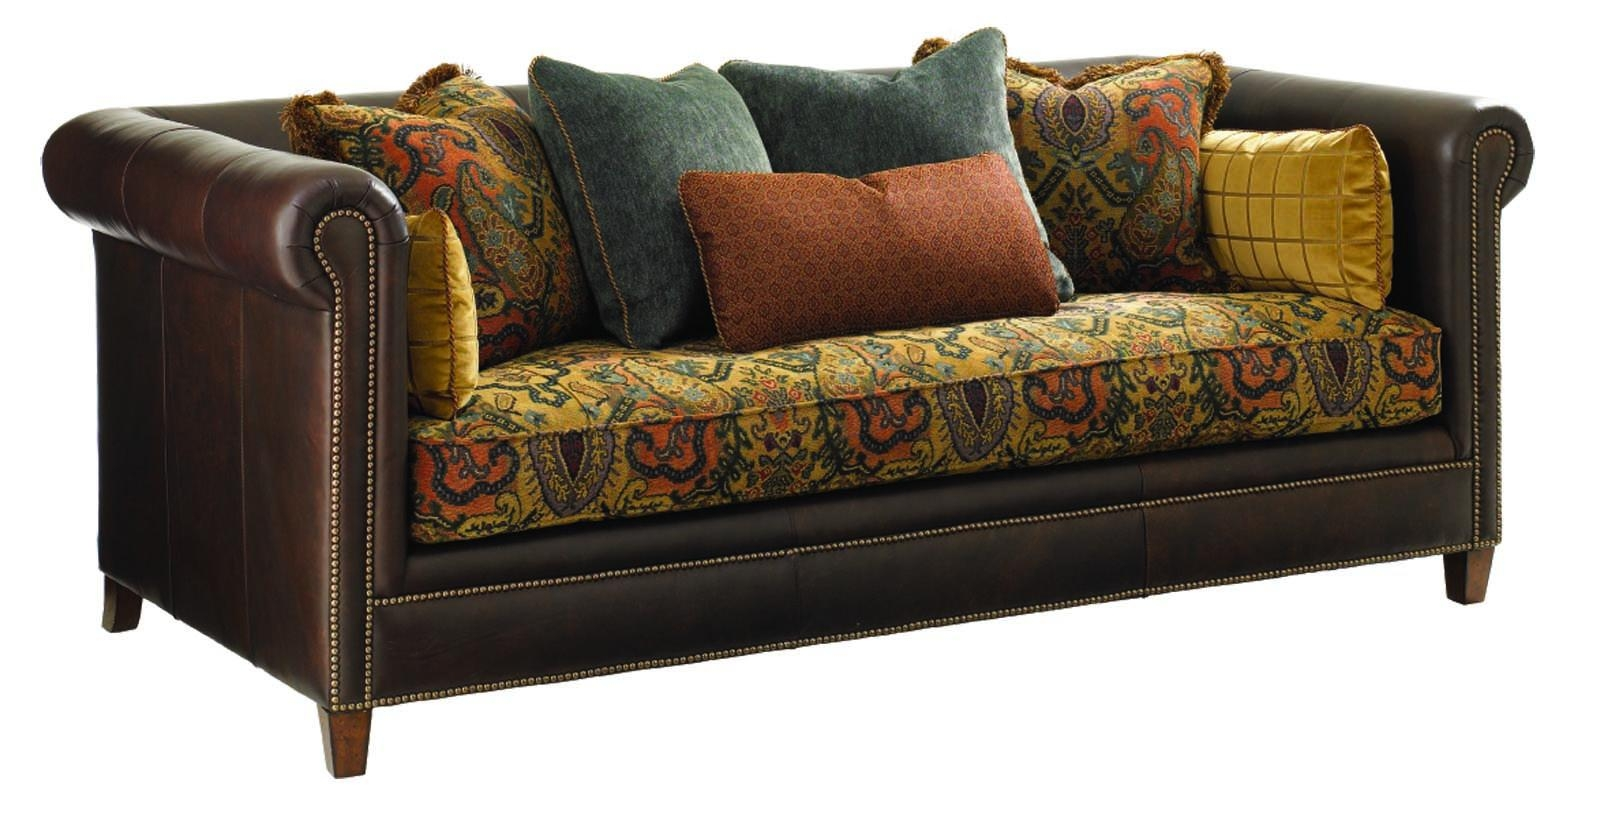 Sofas Center : Leather Fabric Sofas Suit Furniture And Sofa In L Pertaining To Leather And Cloth Sofa (View 20 of 20)